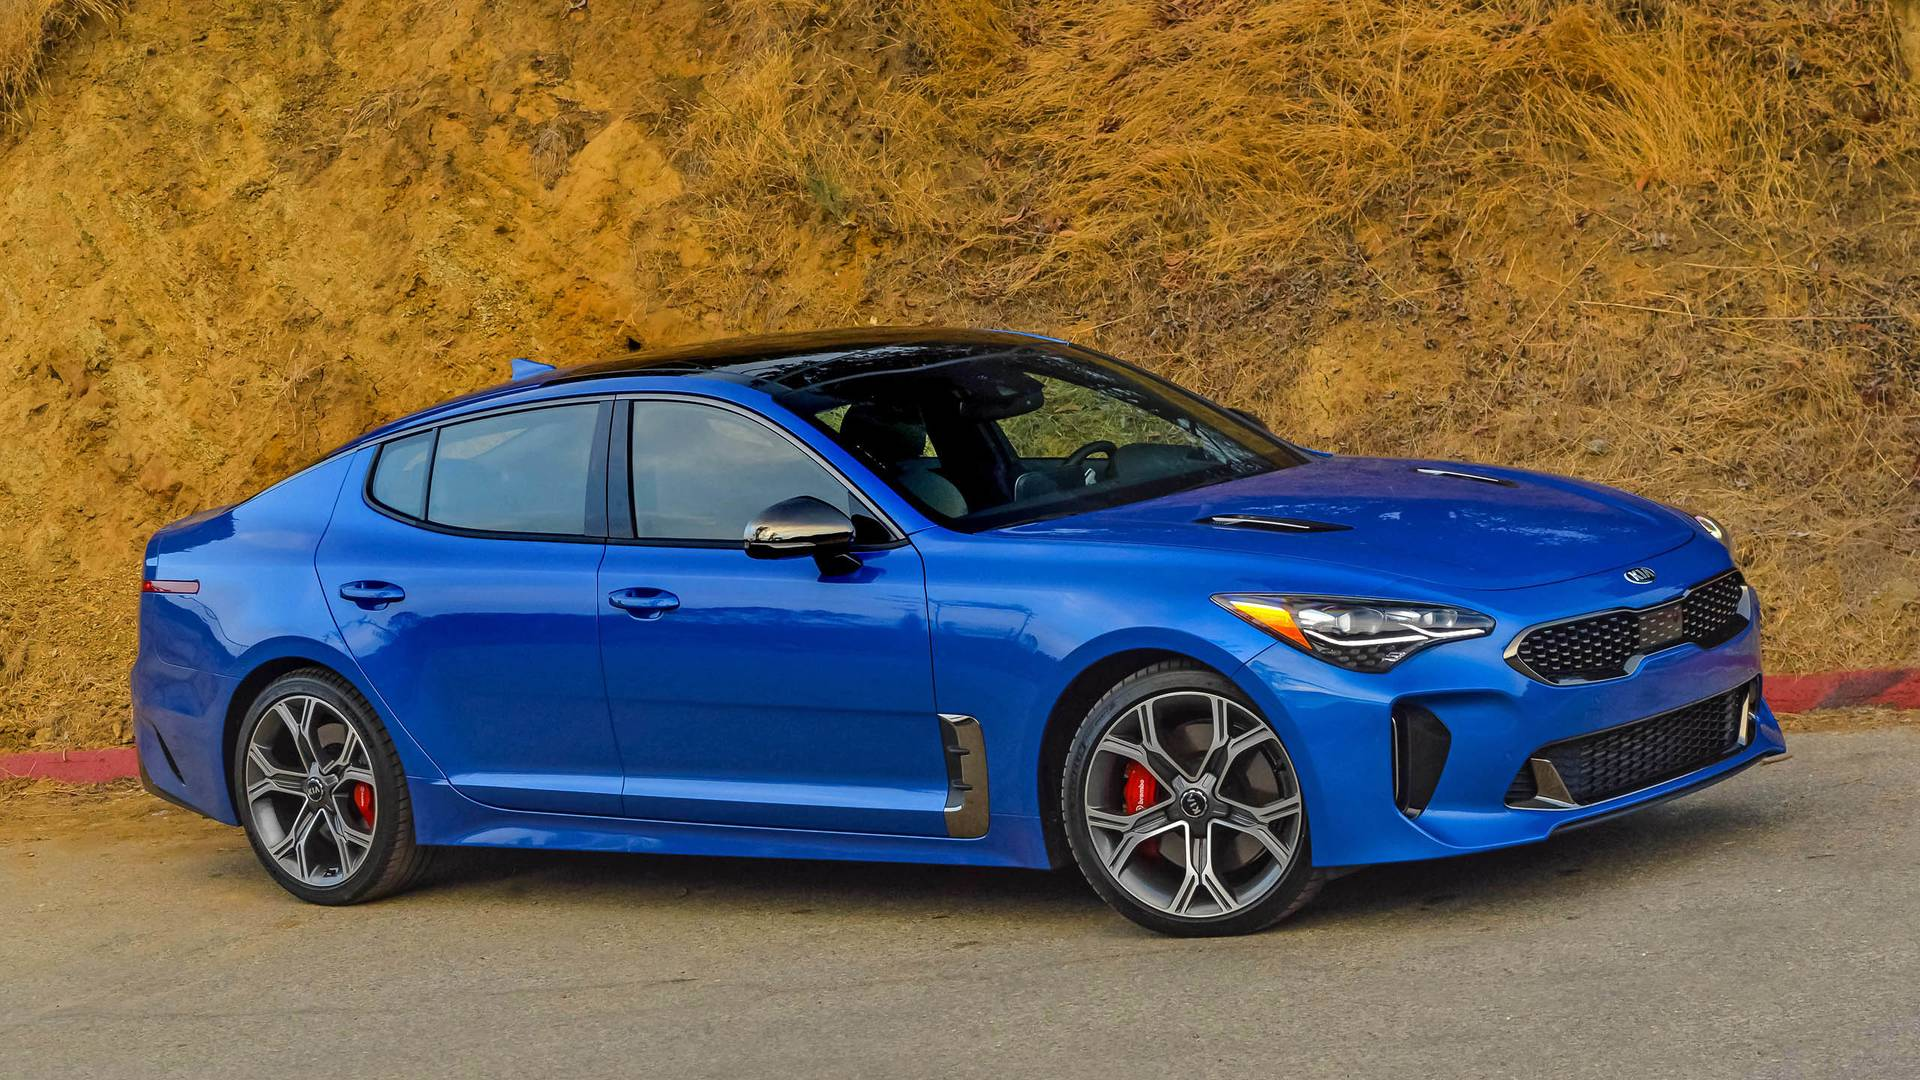 You Can Lease A New Kia Stinger For 299 A Month